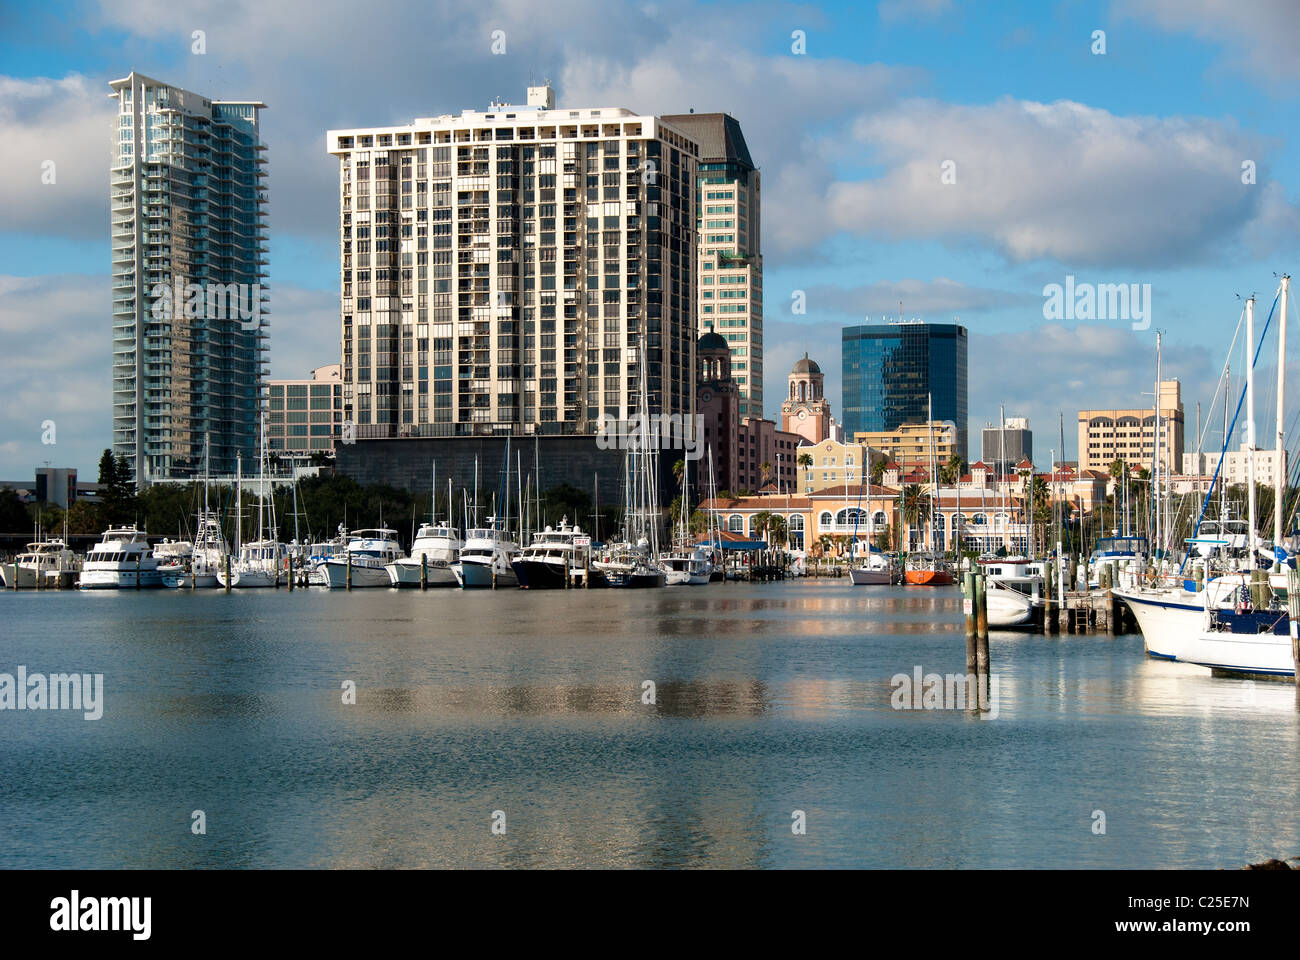 City center and yacht basin facing Tampa Bay in St. Petersburg, Florida, USA - Stock Image